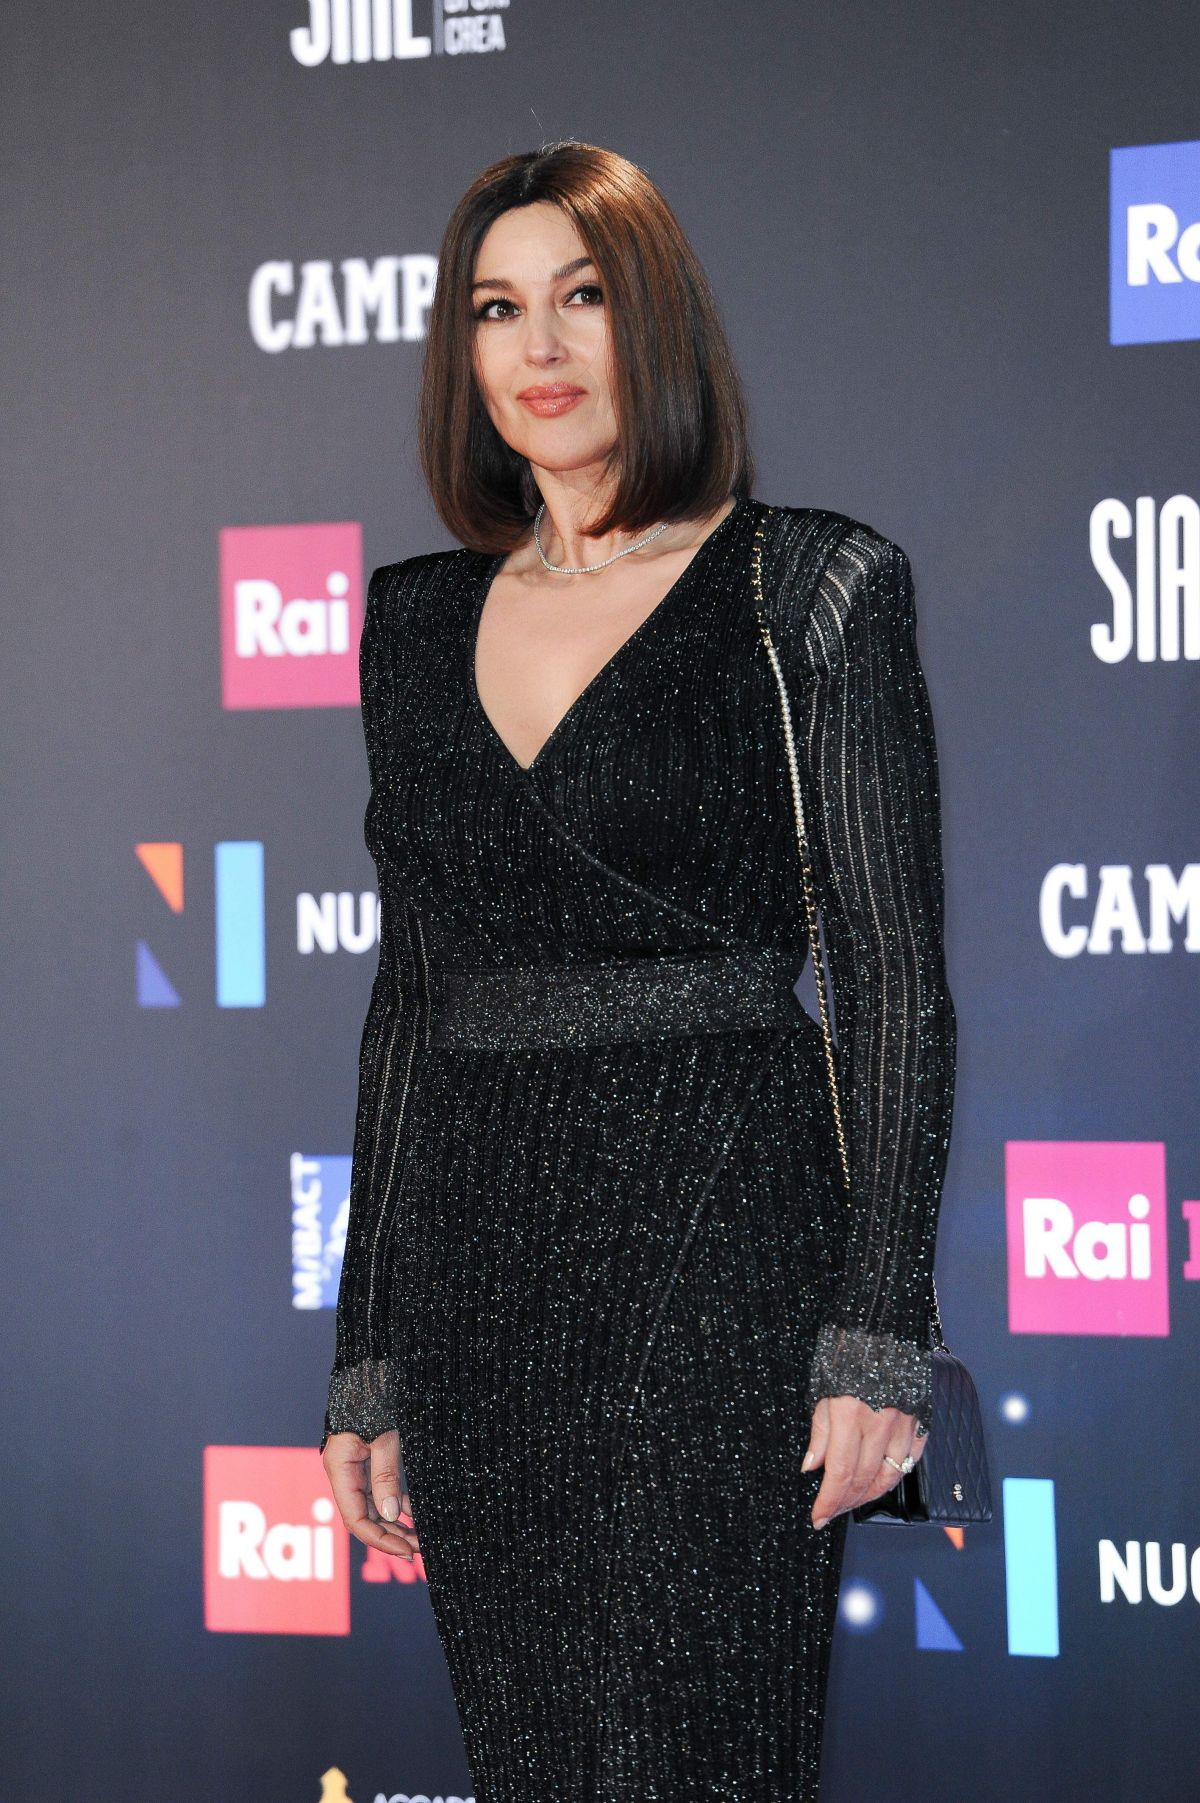 Think, monica bellucci awards pity, that